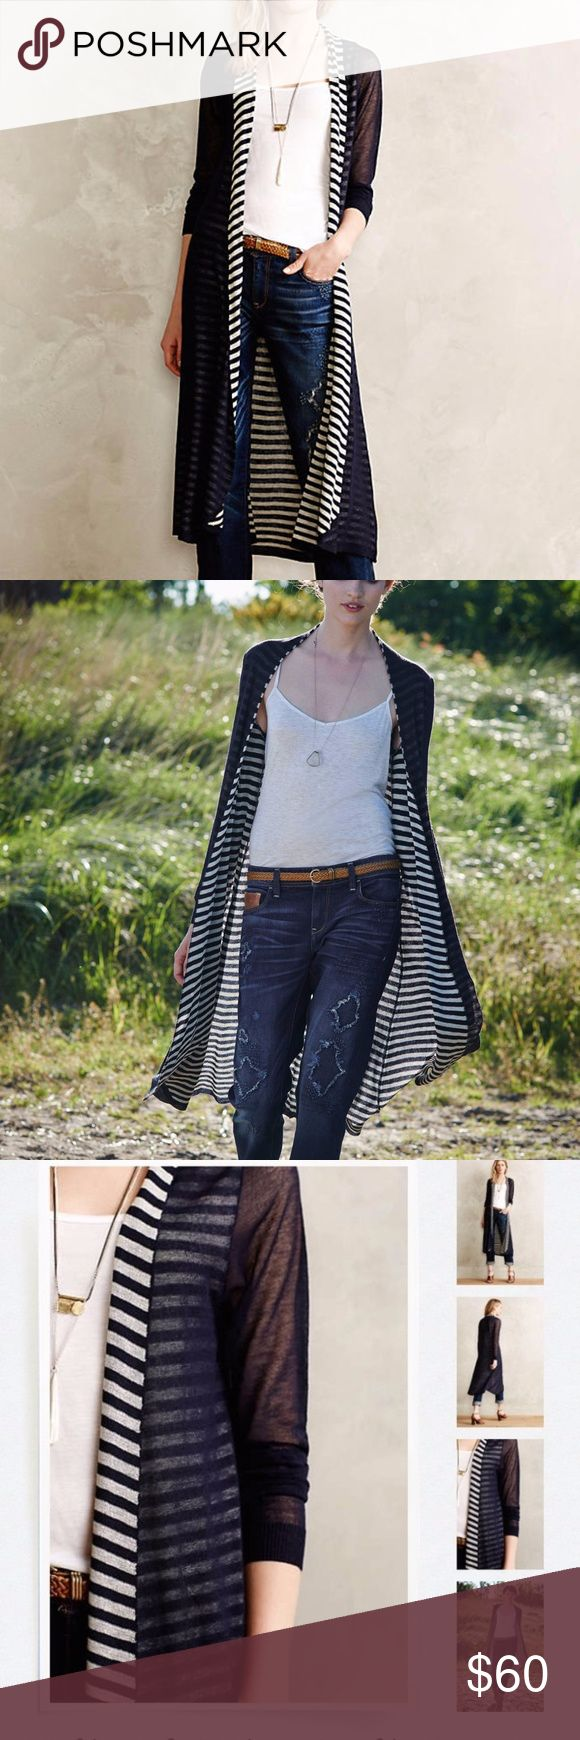 NWT $118 Anthropologie Eclipsed Stripe Cardigan Brand new with tags attached! Sold at Anthropologie back in 2014. Highly reviewed and hard to find. From Anthro: When it comes to basics, we can't get enough of easy, thoughtful pieces that go beyond the call of casual duty. This transitional cardi is a cut above your standard long sleeve layer. A hint of striped lining and an extended length make this piece a wardrobe go-to. This color is called navy/marin by anthro.  By Ladakh Open front…